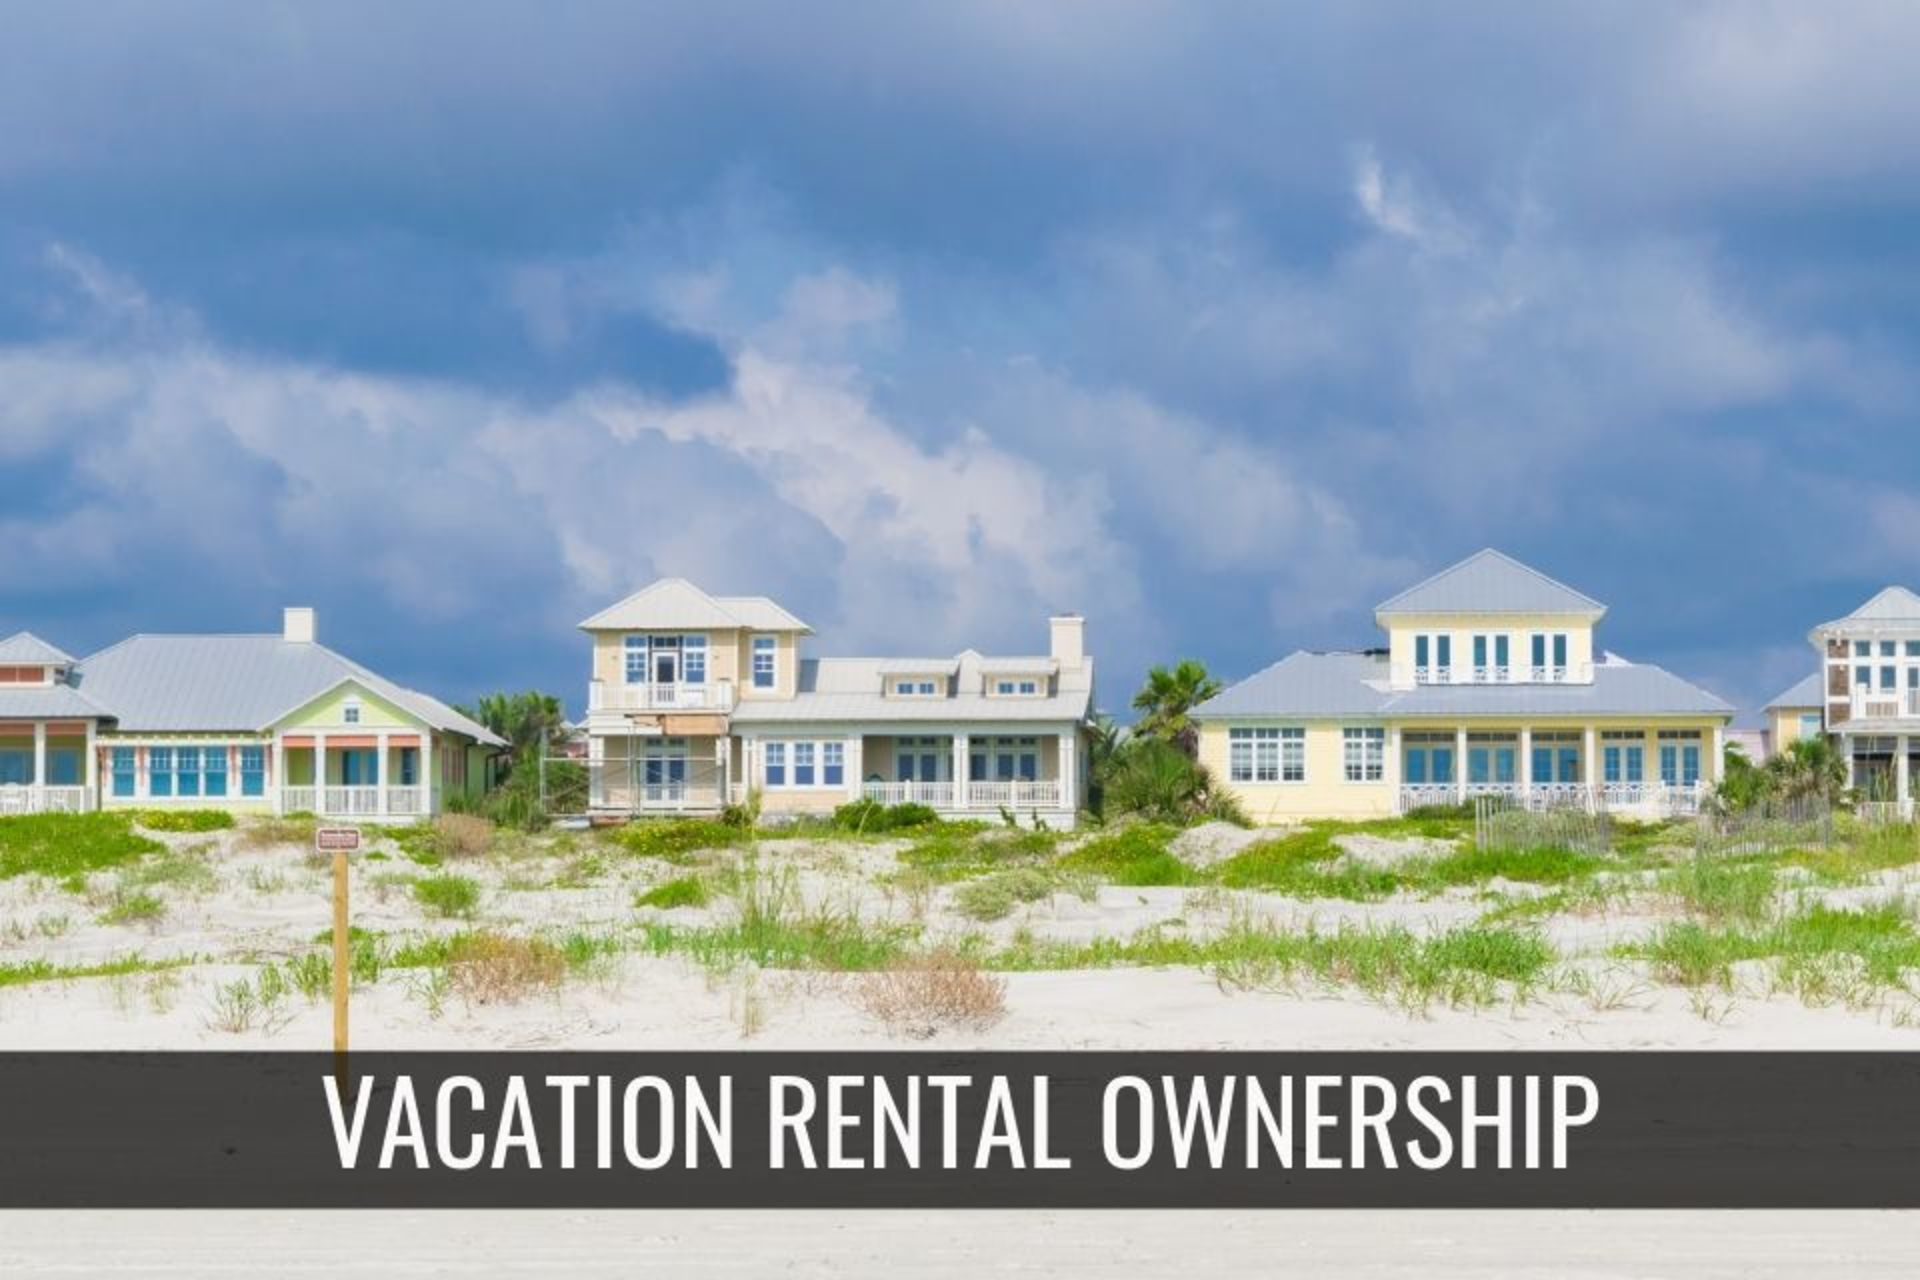 Vacation Rental Ownership